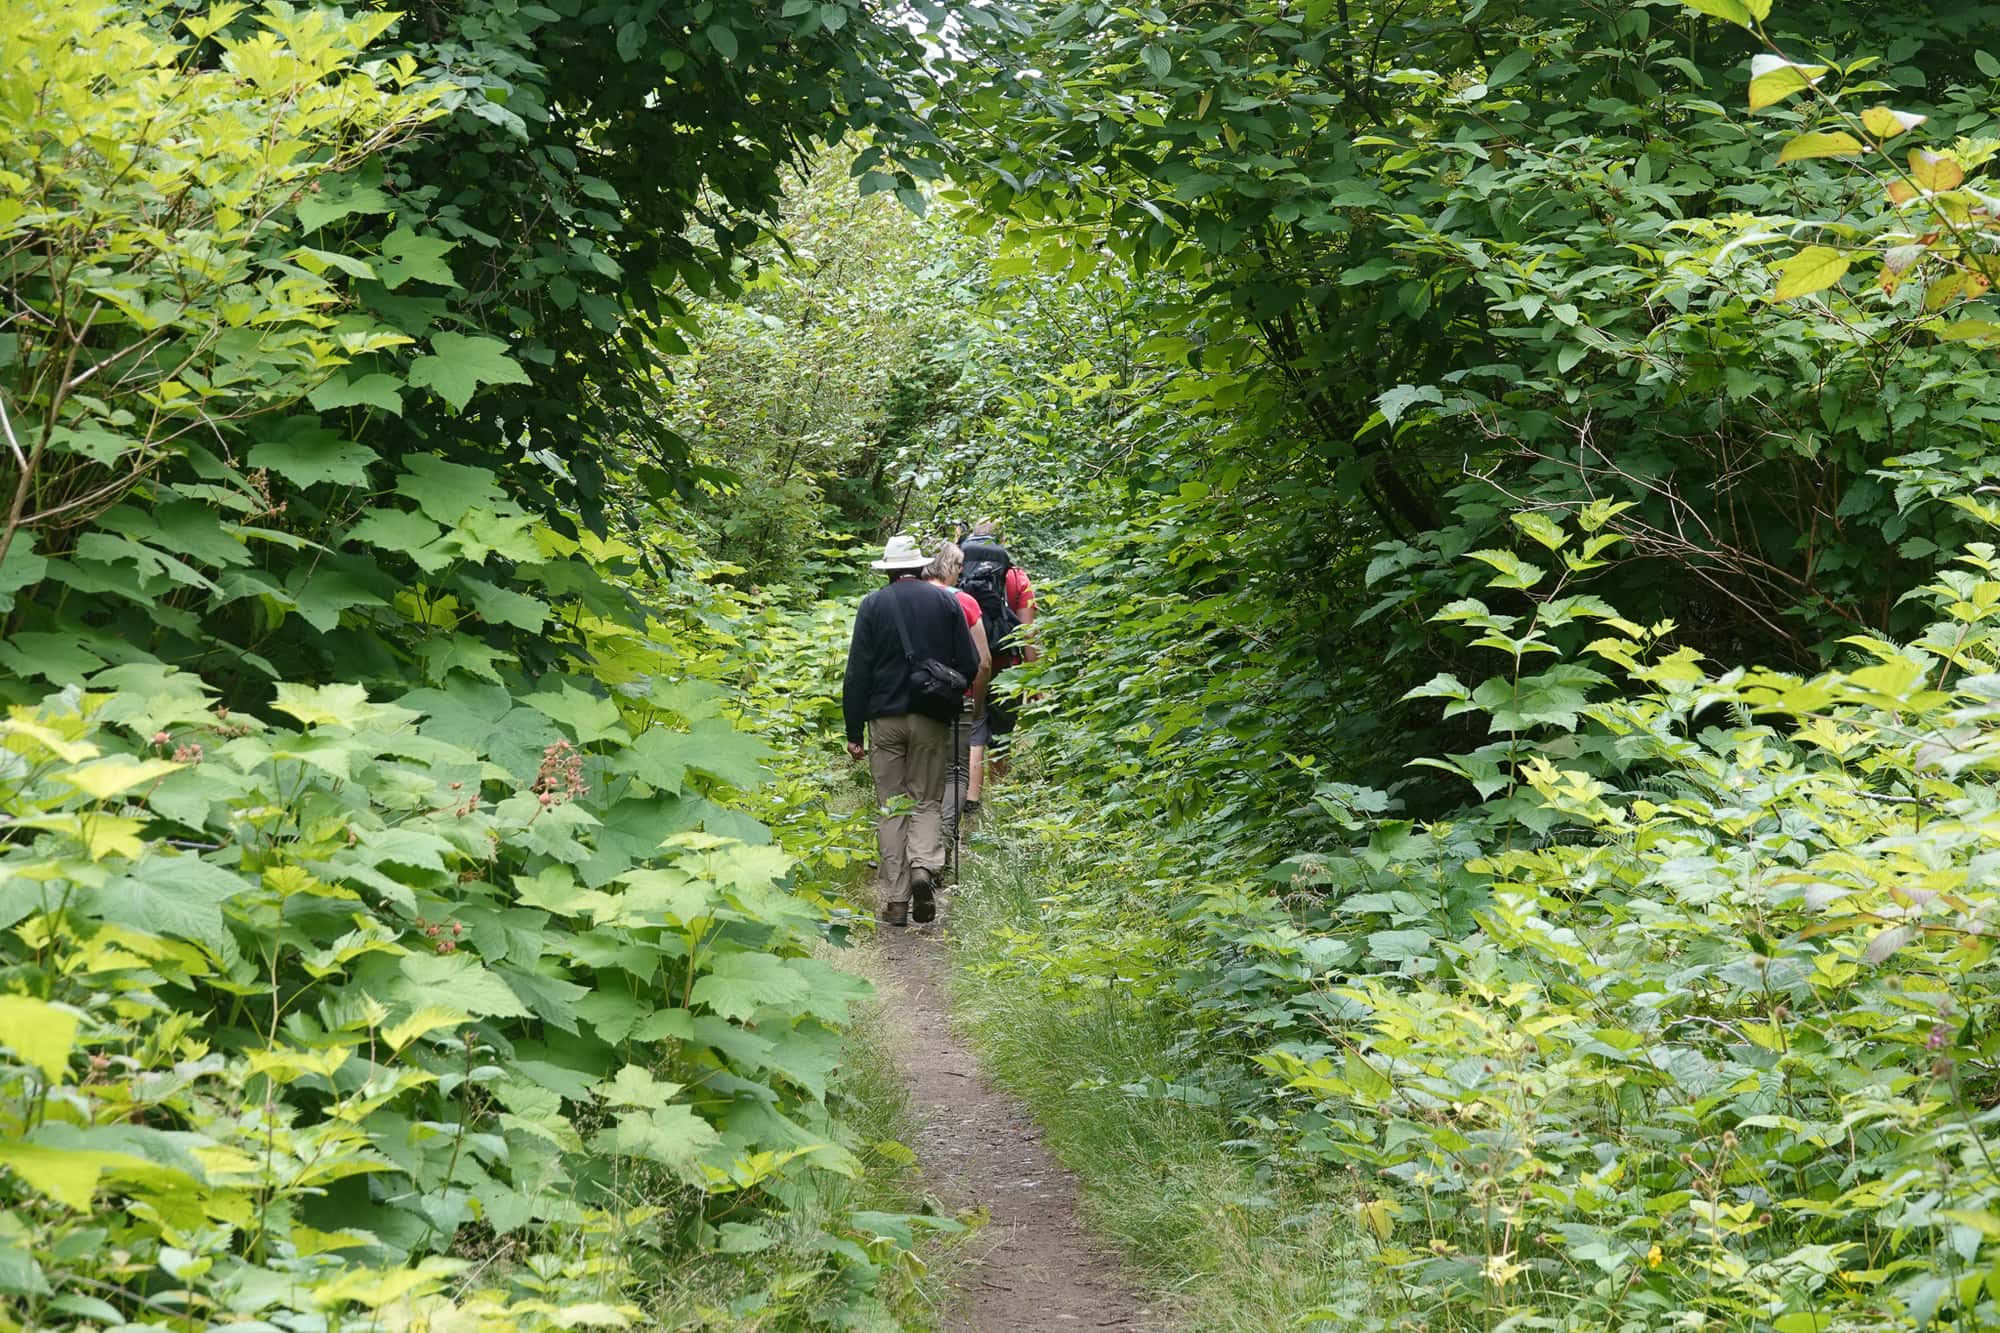 Two people hiking through thick green foliage